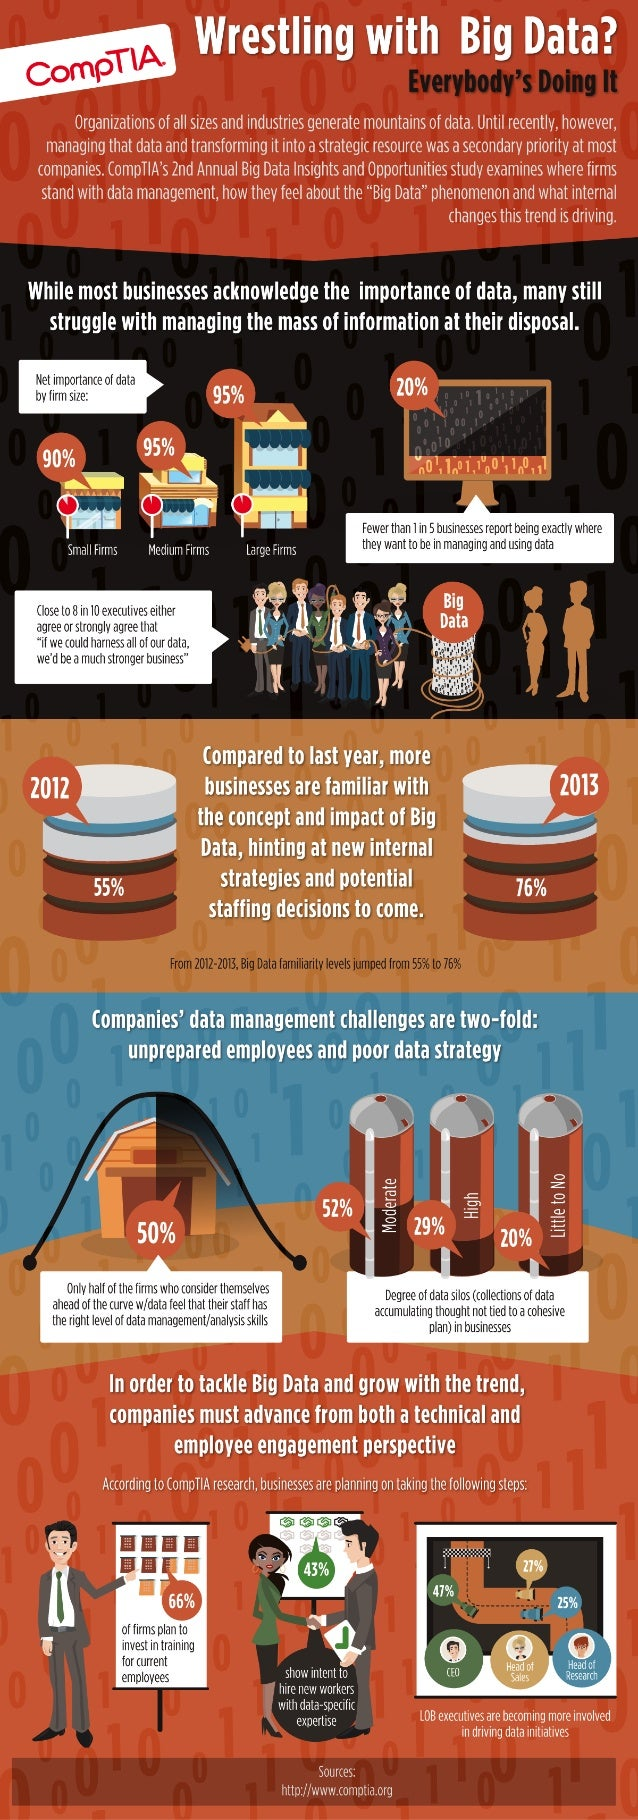 Wrestling With Big Data? Everybody's Doing It